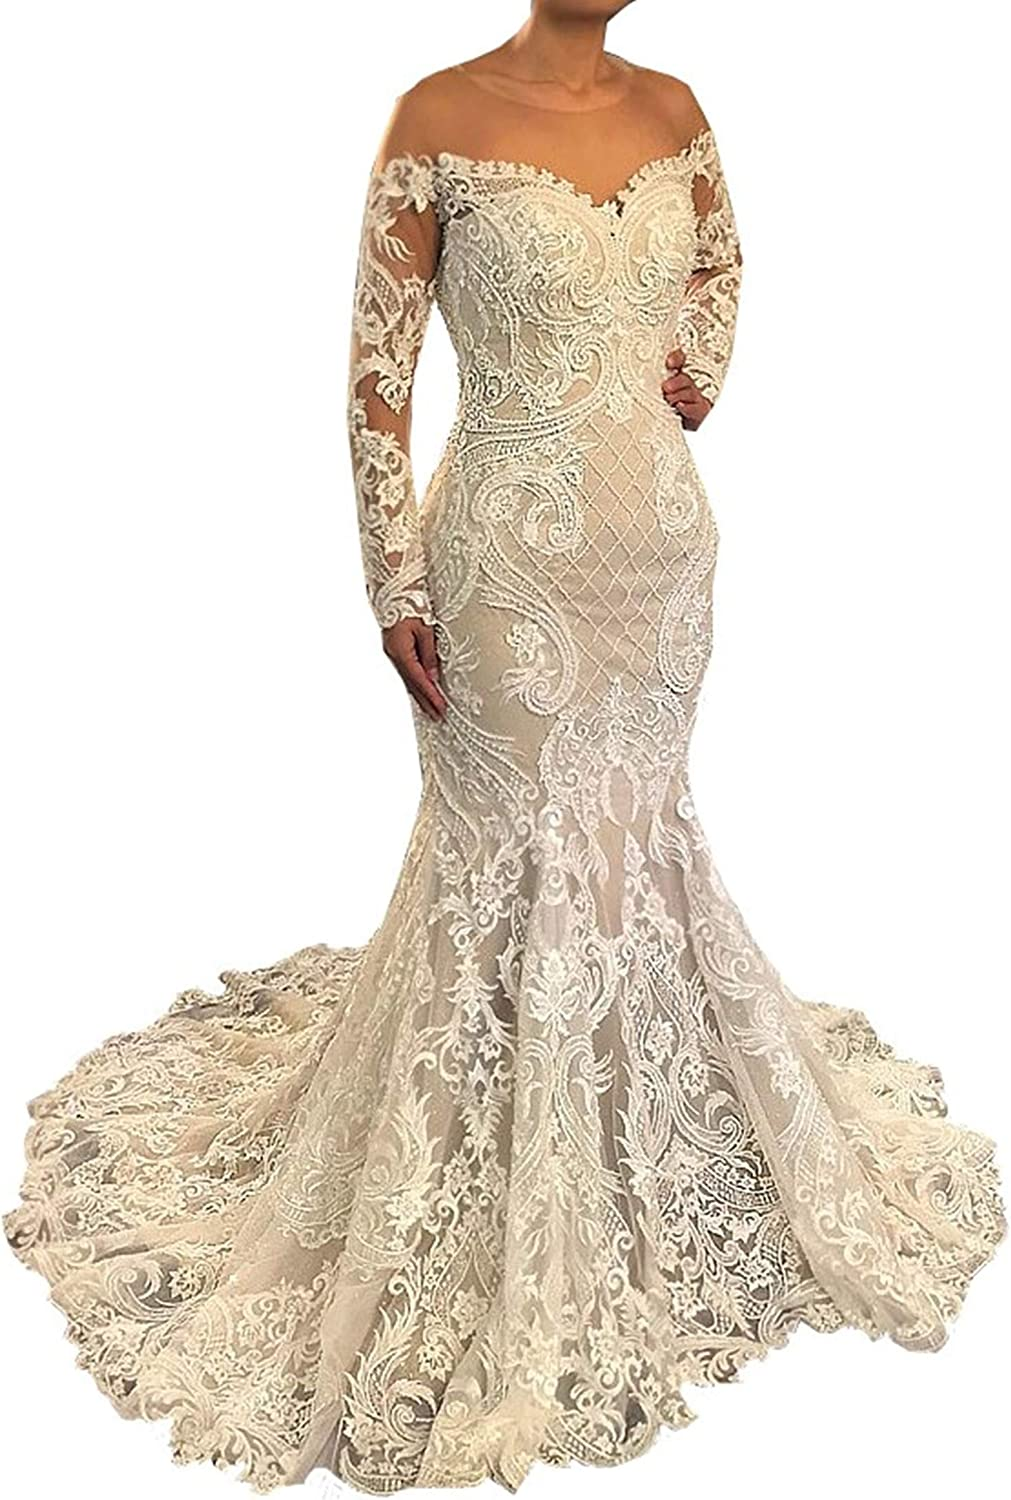 iluckin Women's Plus Size Bridal Prom Ball Gown Mermaid Wedding Dresses with Train for Bride 2020 Lace Long Sleeves